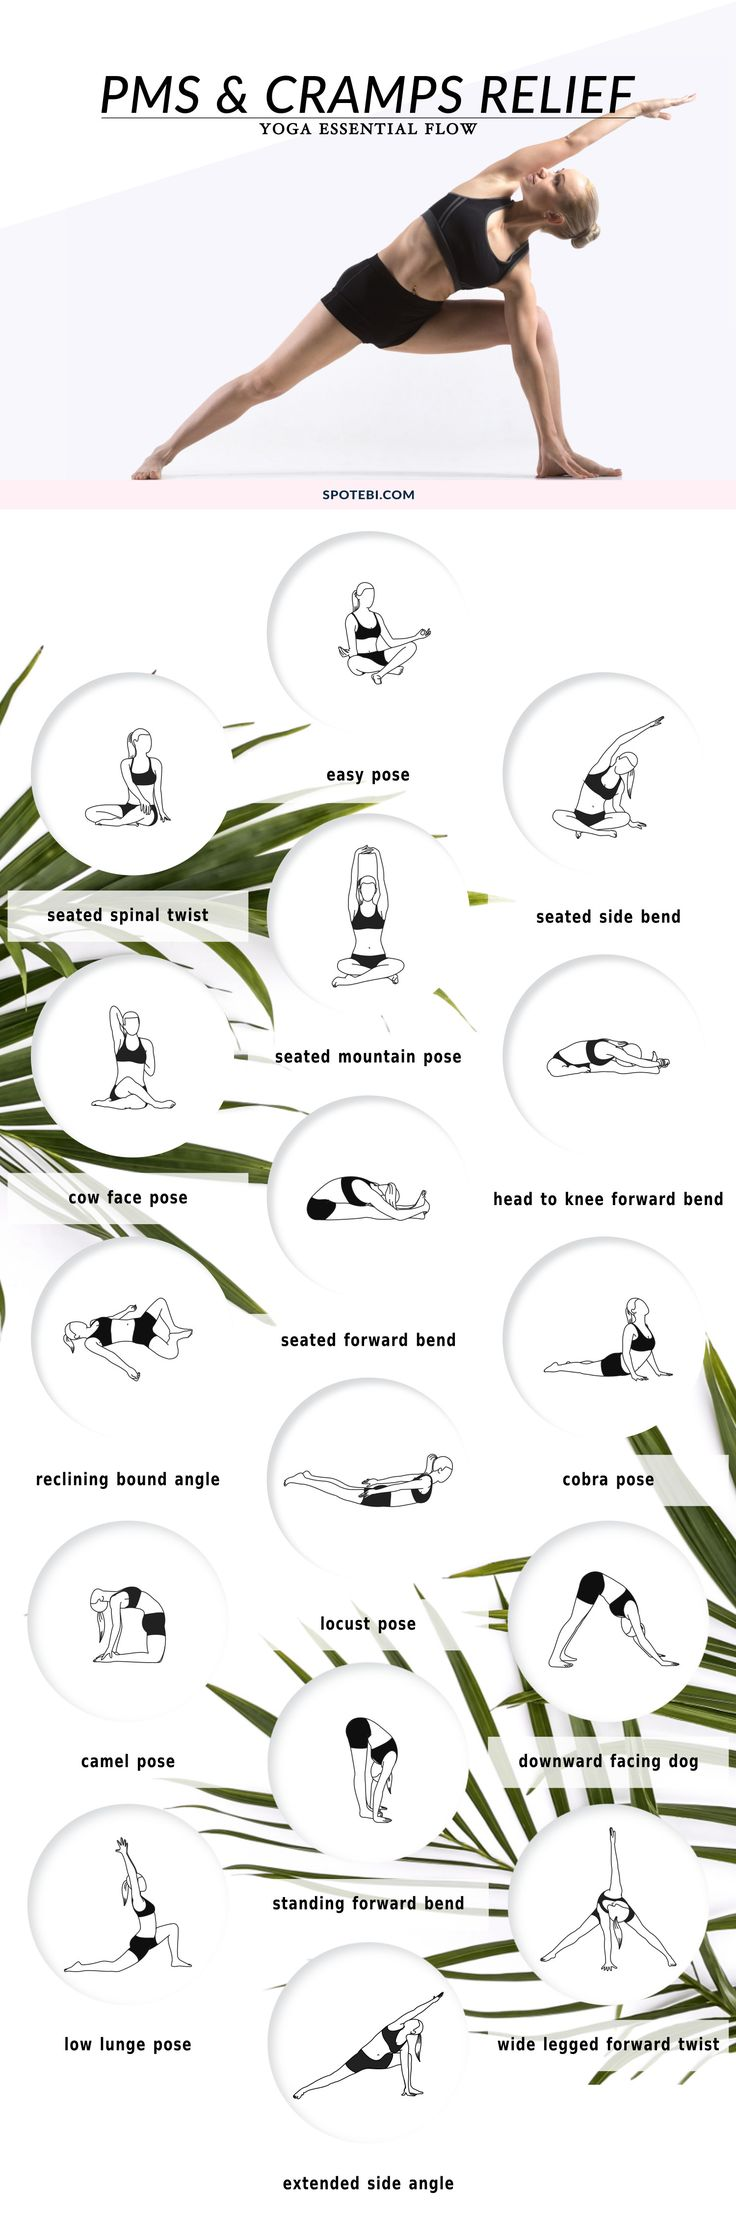 PMS AND CRAMPS RELIEF YOGA ESSENTIAL FLOW